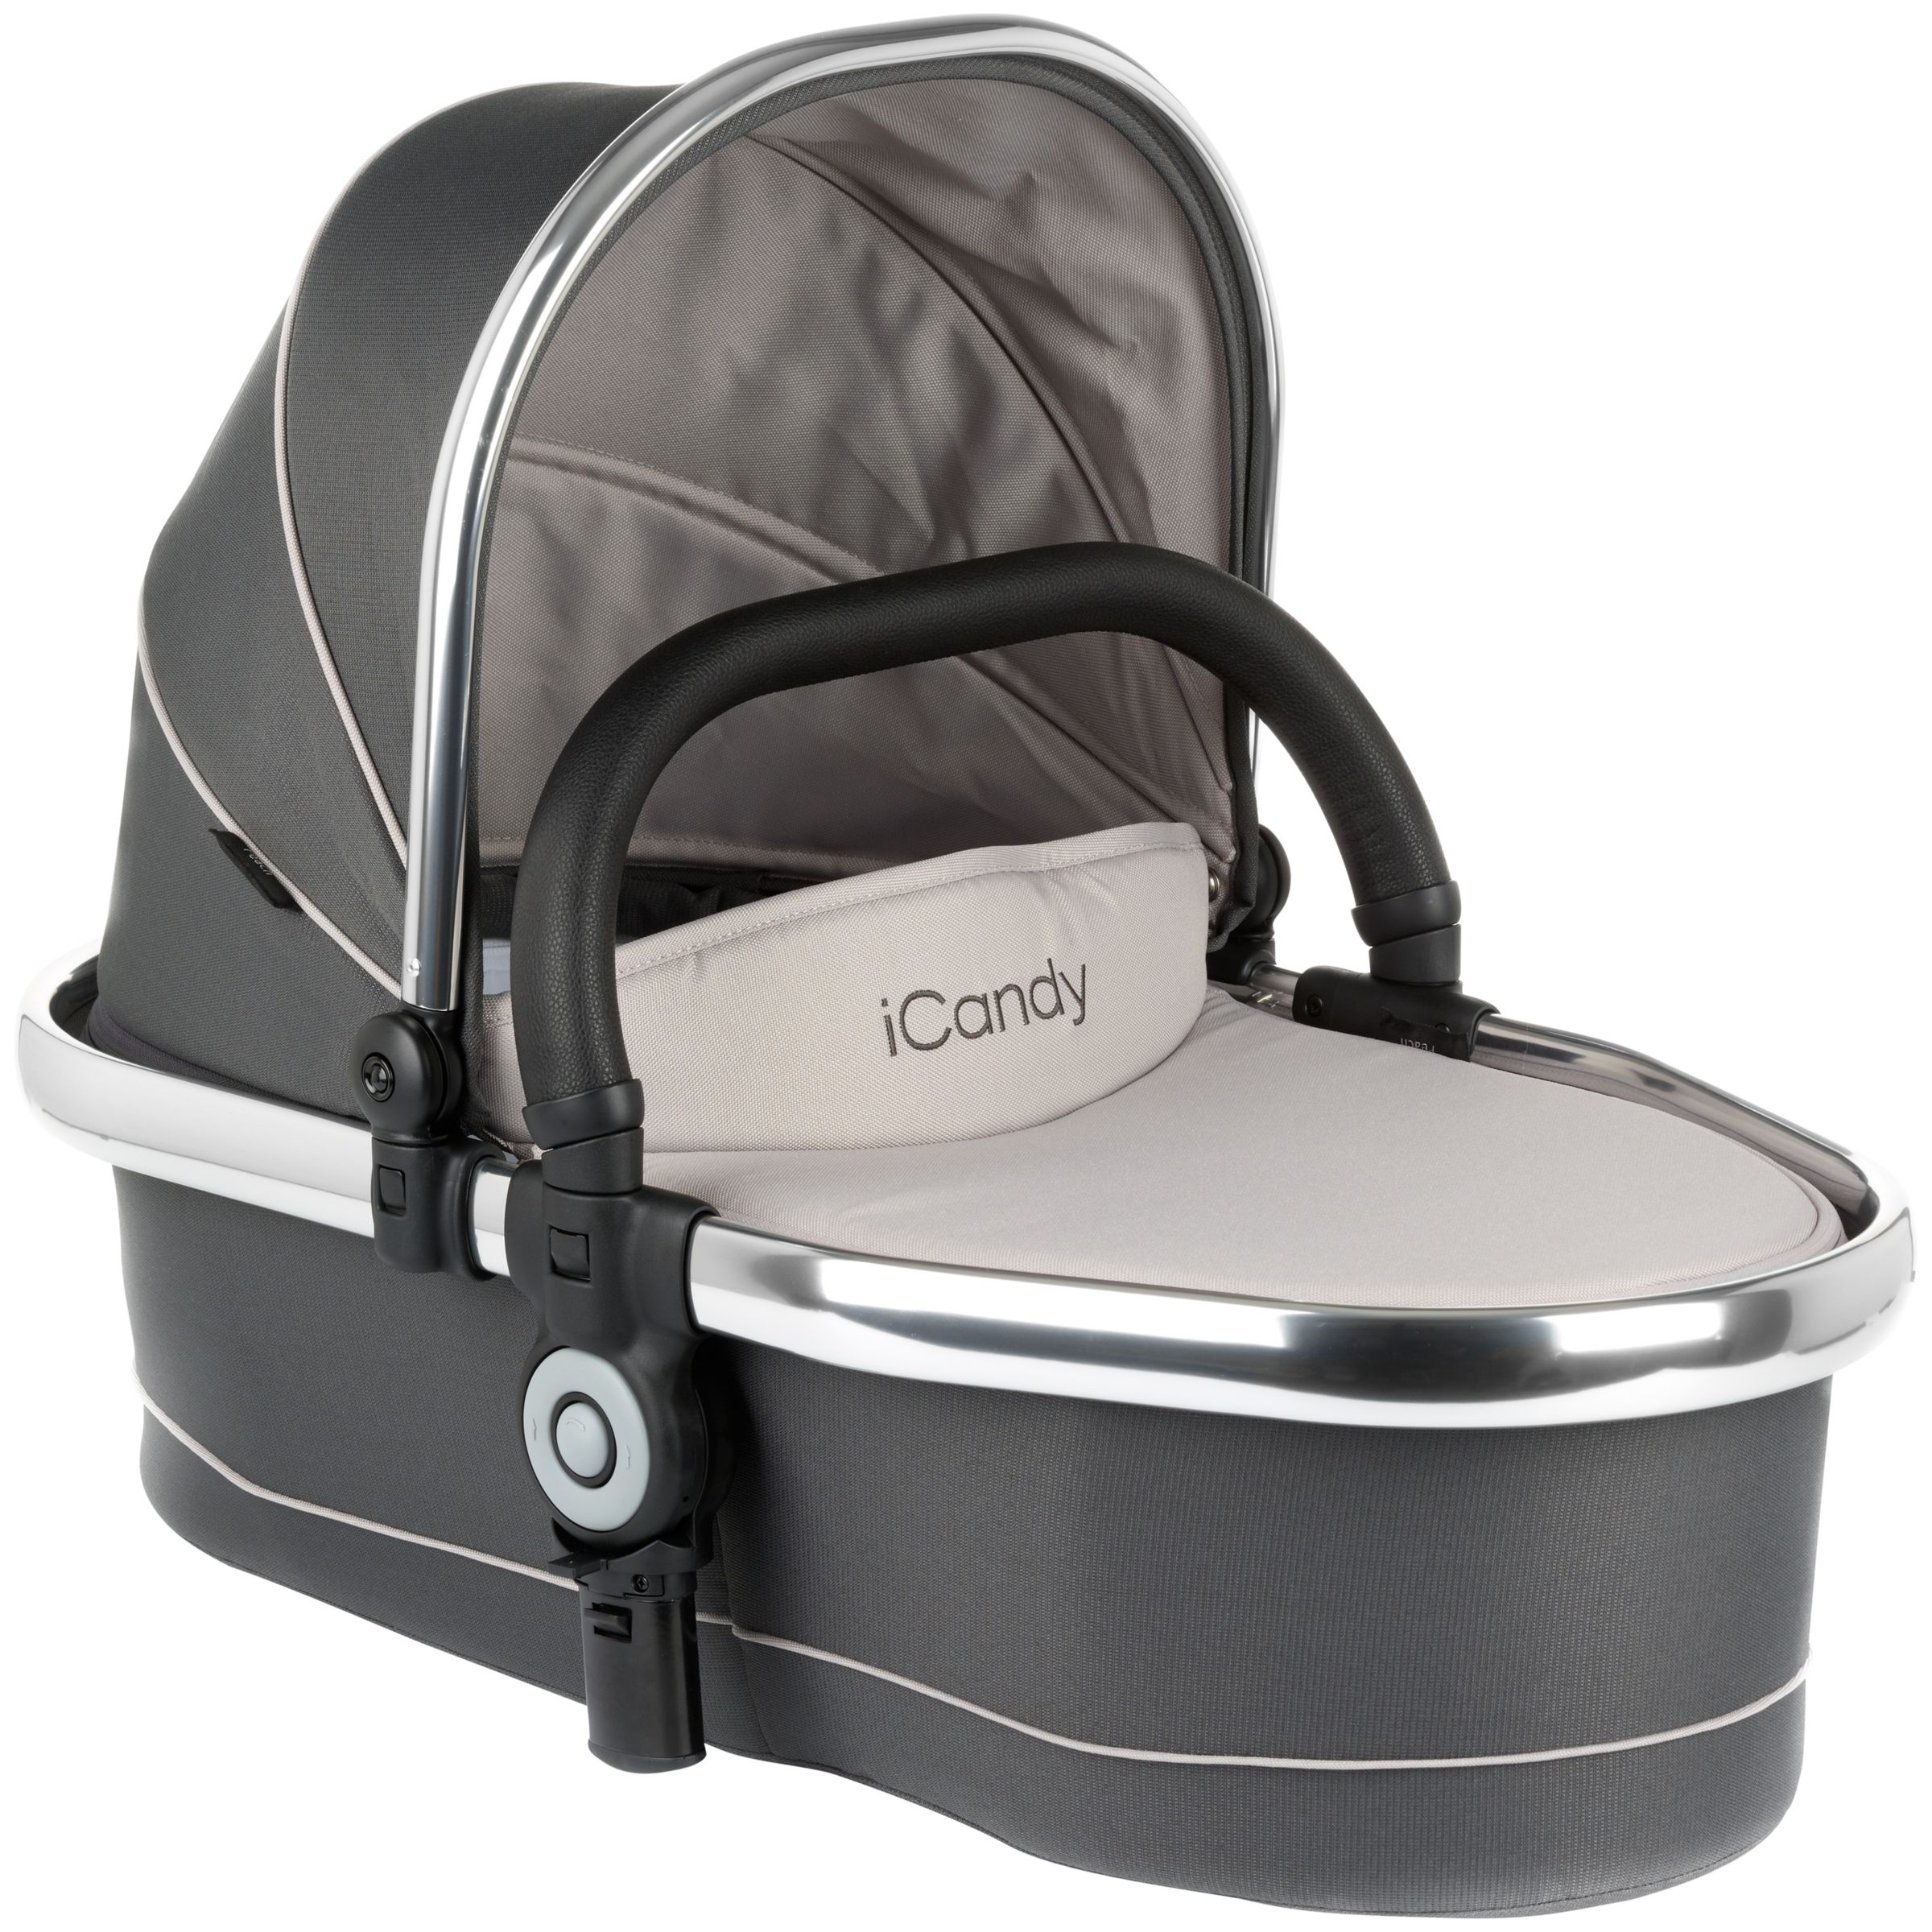 iCandy iCandy Peach Blossom Carrycot, Truffle 2